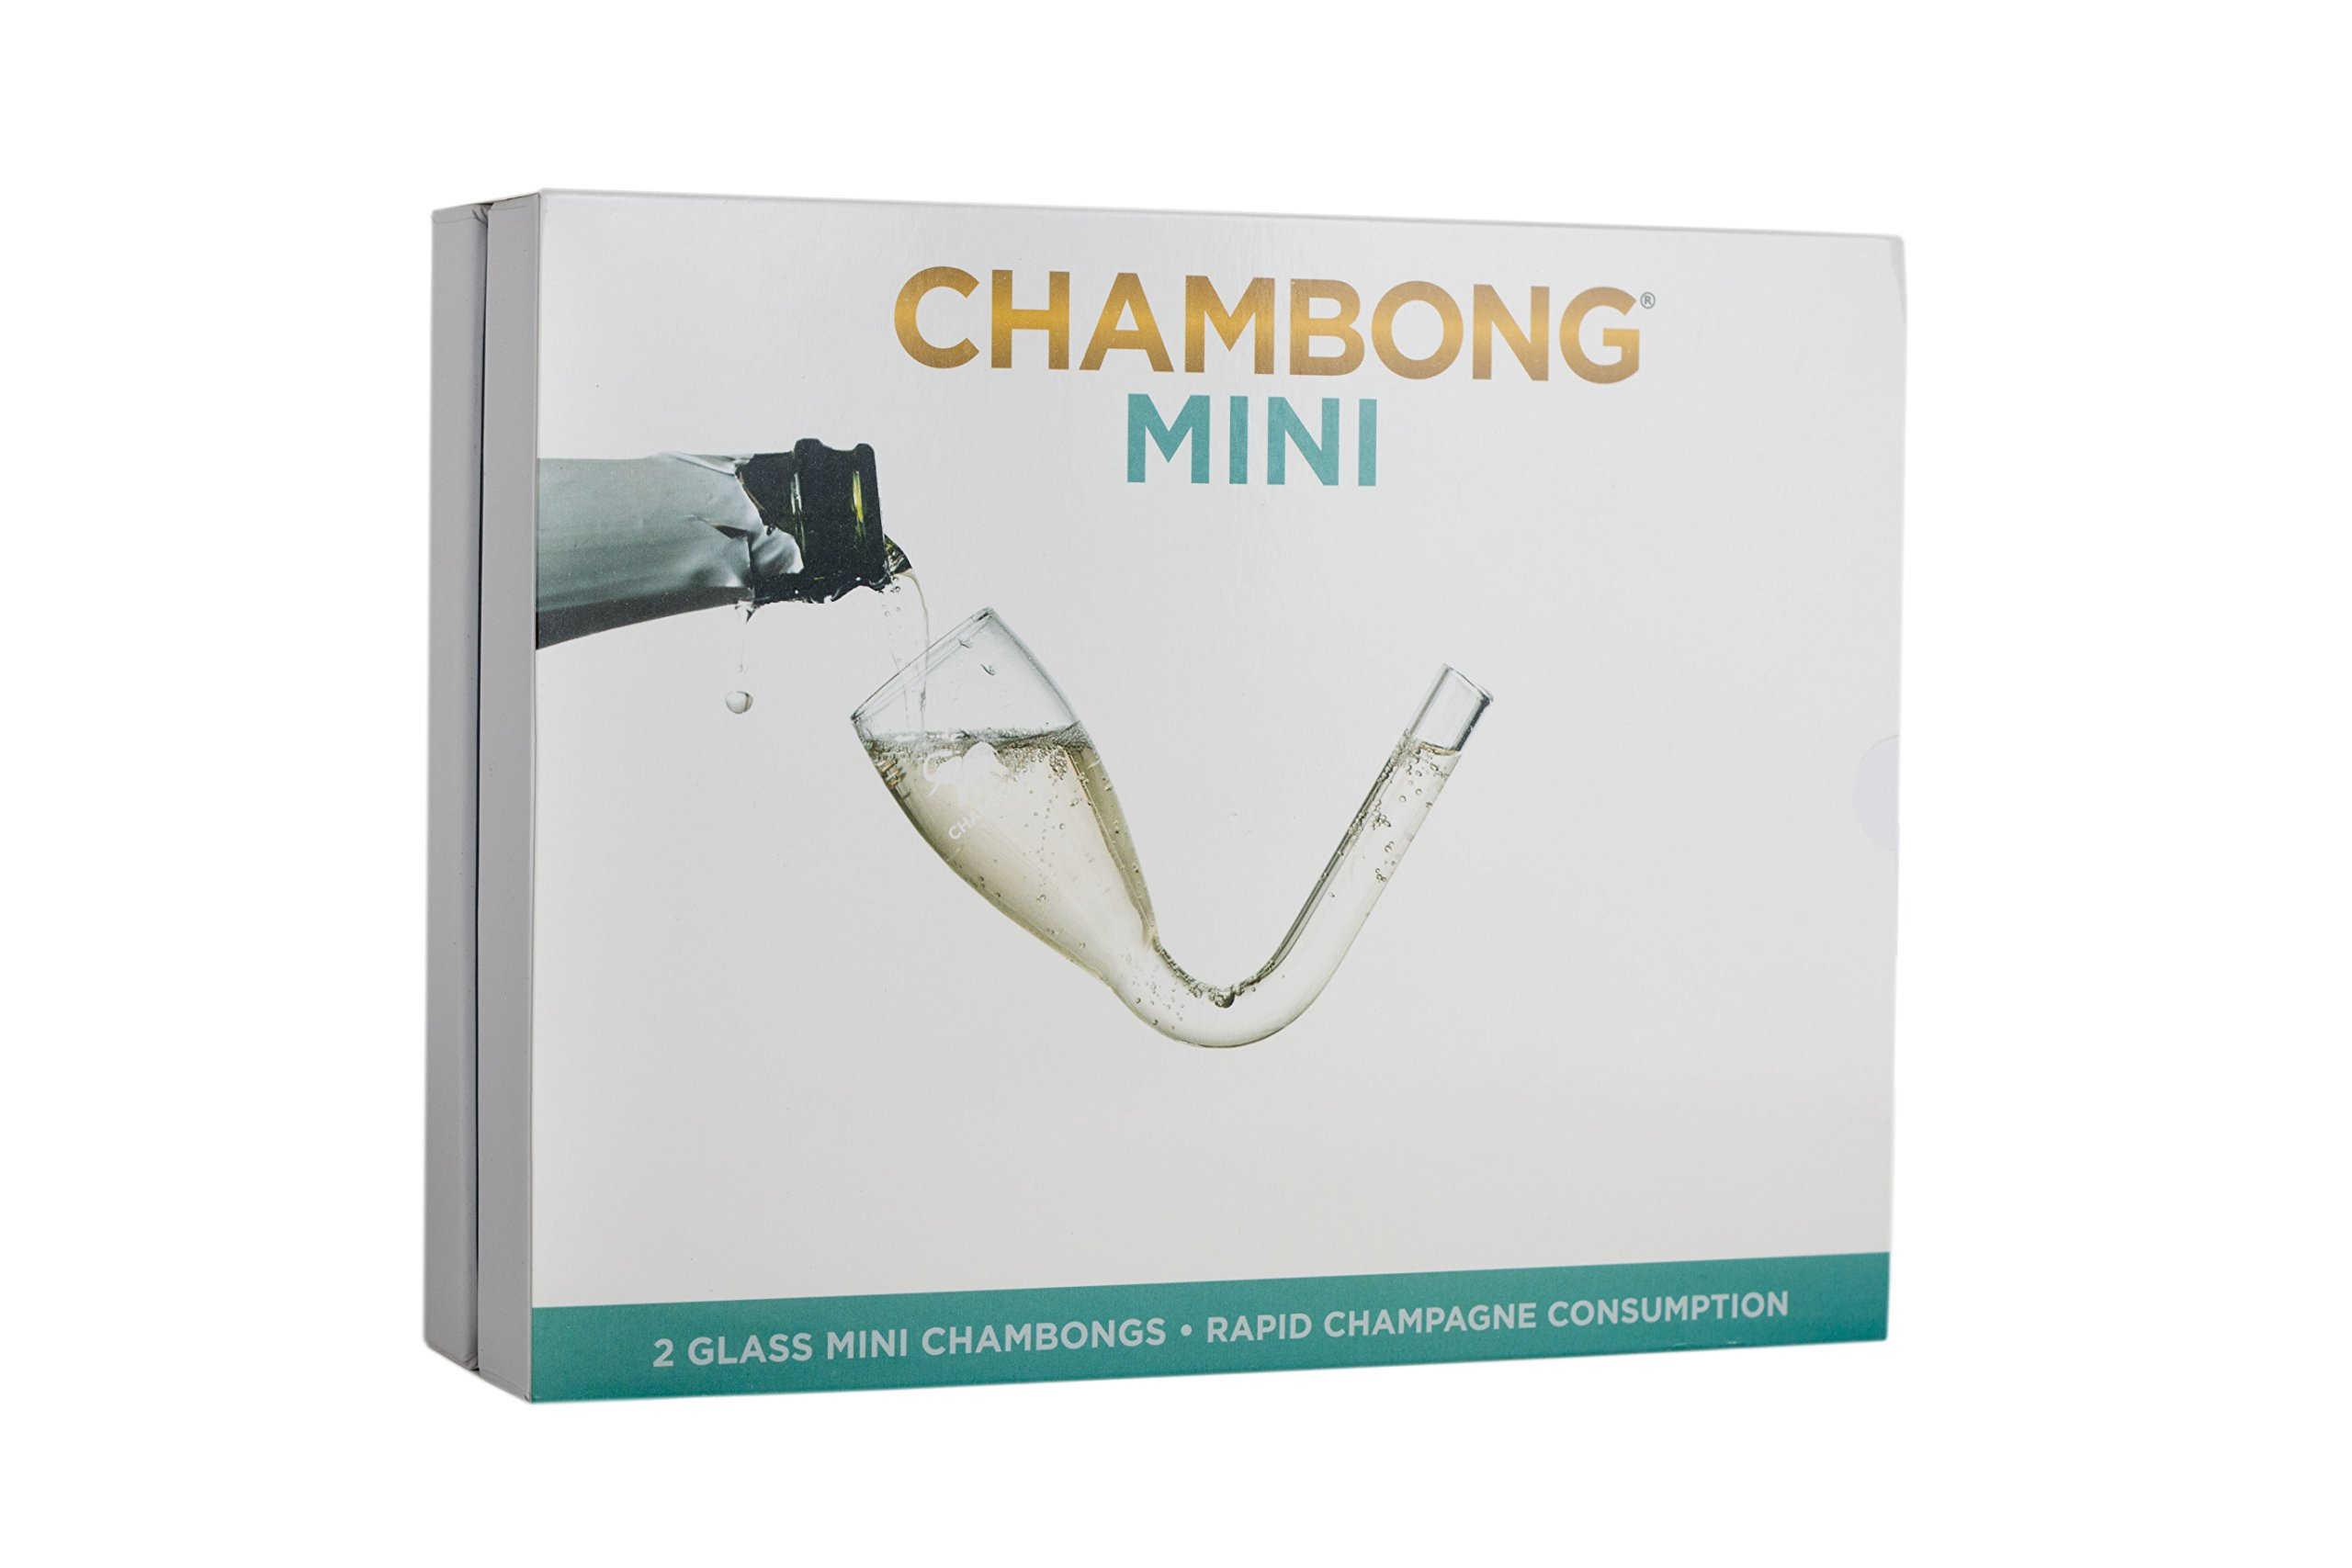 Chambong Mini - Shot glasses/Glassware for rapid cocktail consumption